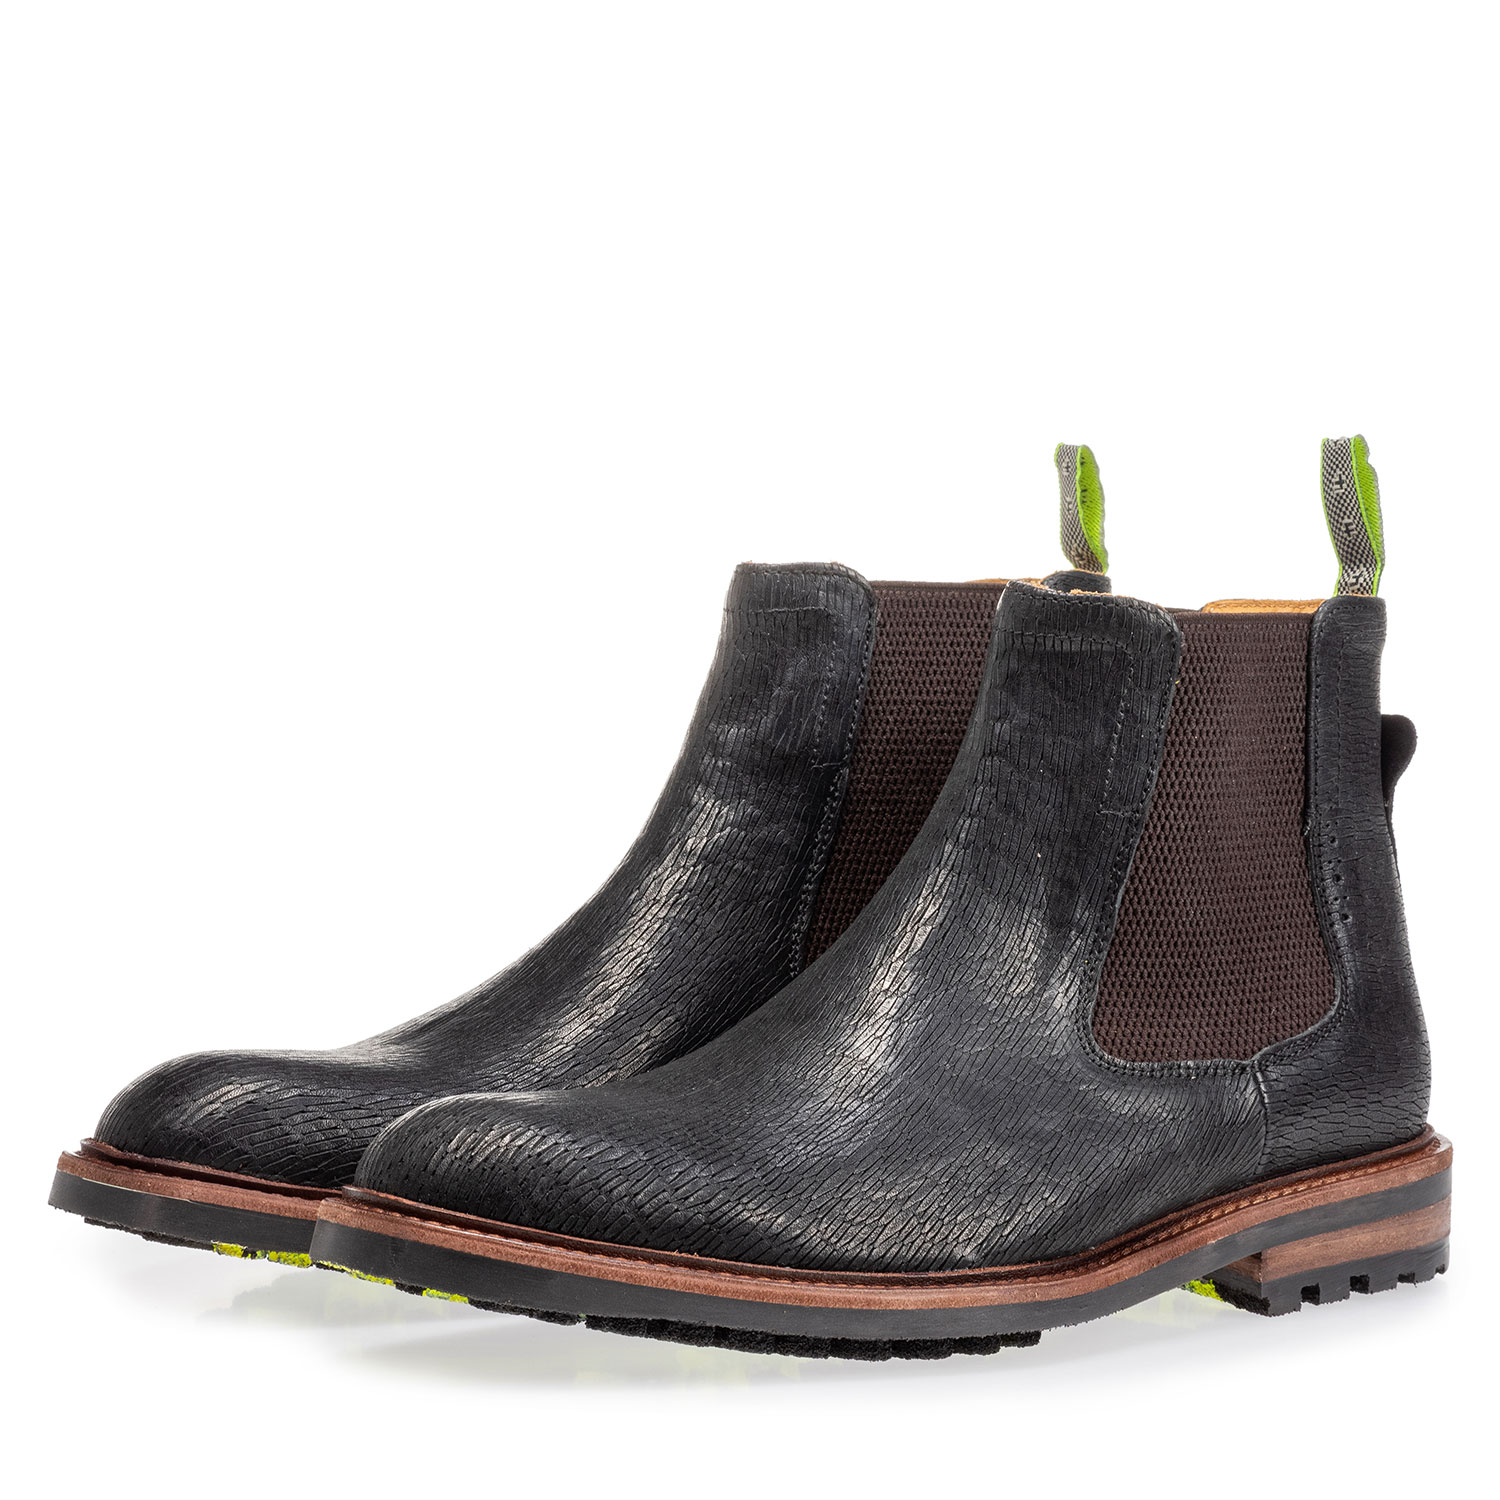 20093/01 - Chelsea boot black with print